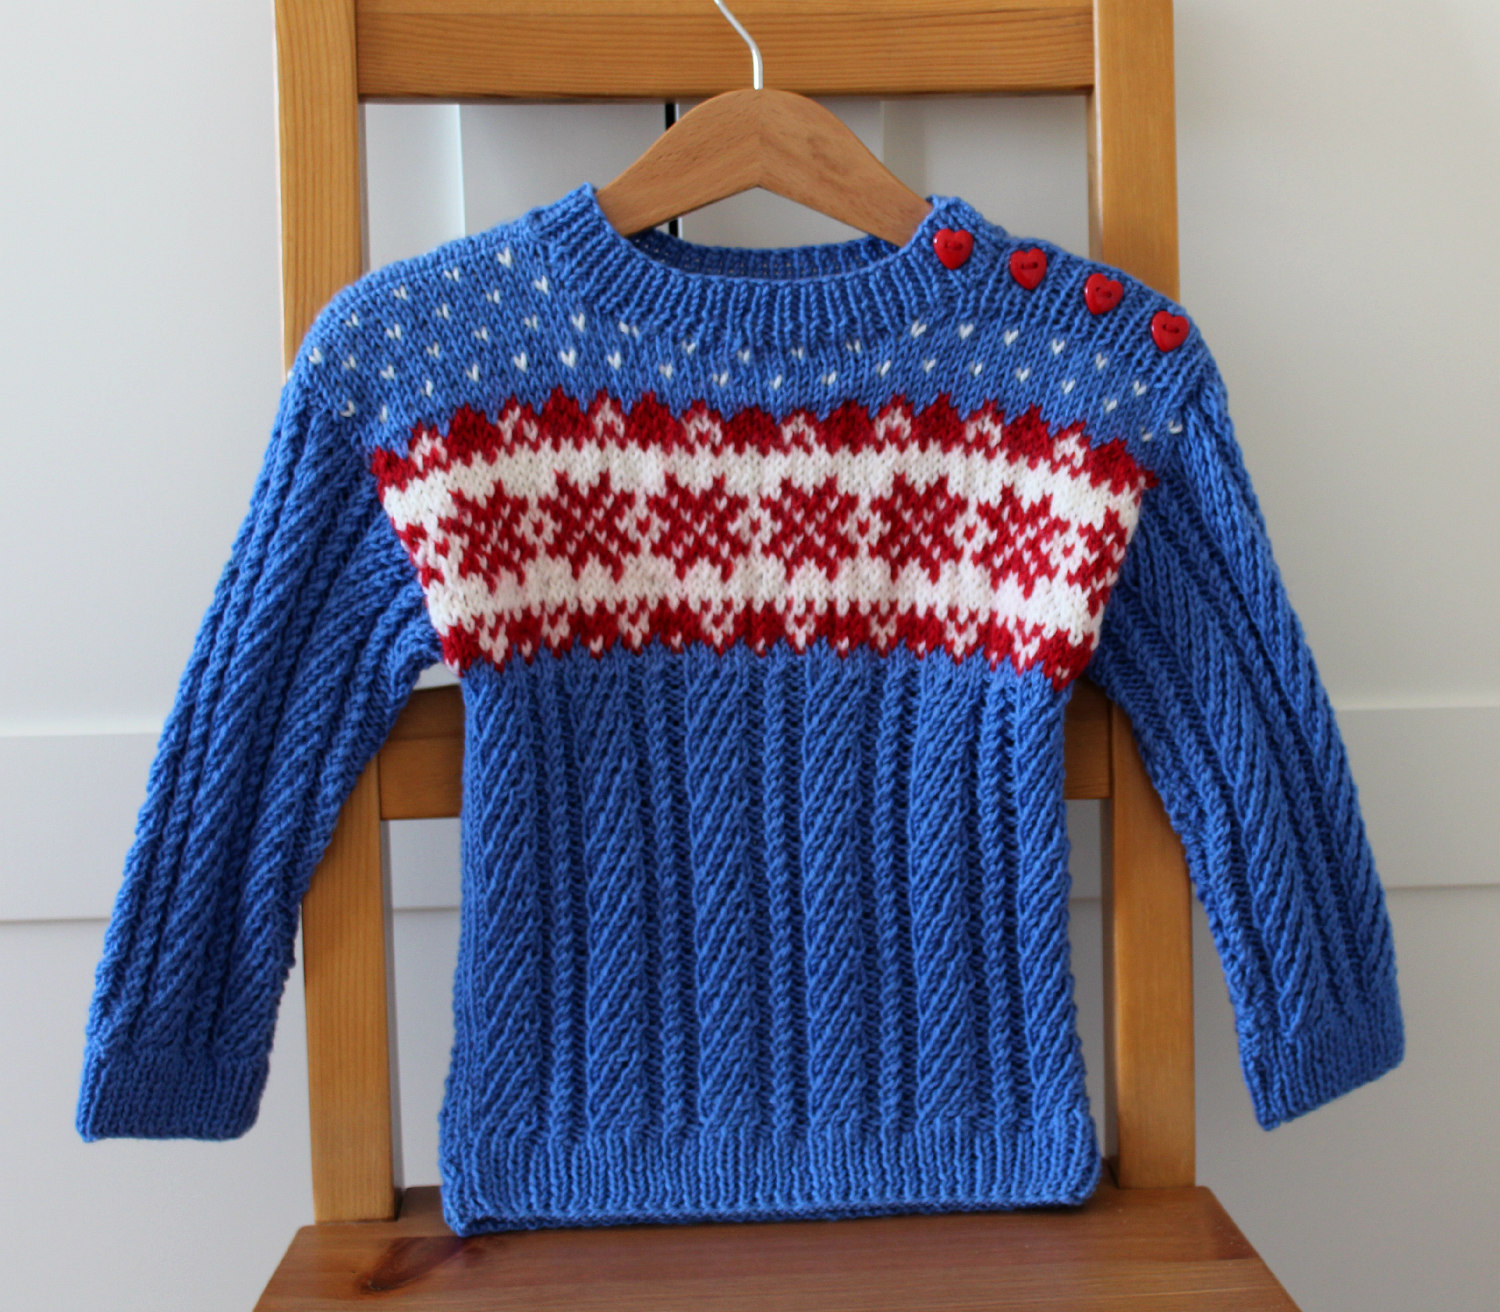 Baby cardigan fair isle blue red white with buttons easy knitting pattern